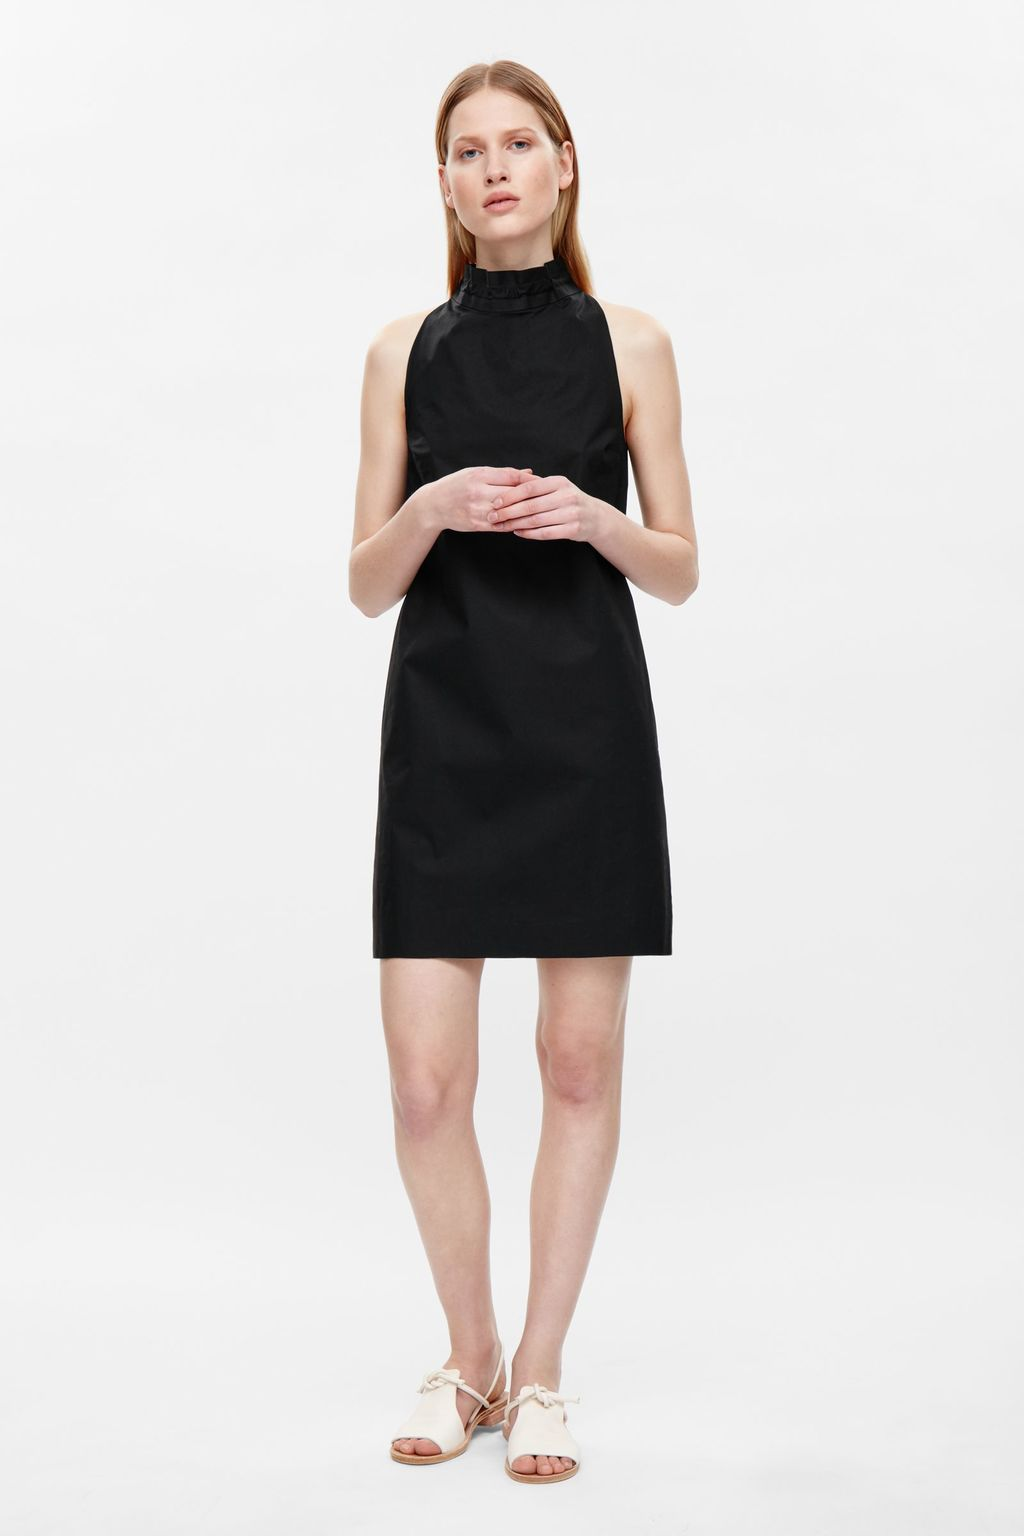 Dress With Tie Collar - style: shift; length: mid thigh; pattern: plain; sleeve style: sleeveless; neckline: high neck; predominant colour: black; occasions: casual; fit: body skimming; fibres: cotton - stretch; sleeve length: sleeveless; pattern type: fabric; texture group: other - light to midweight; season: s/s 2016